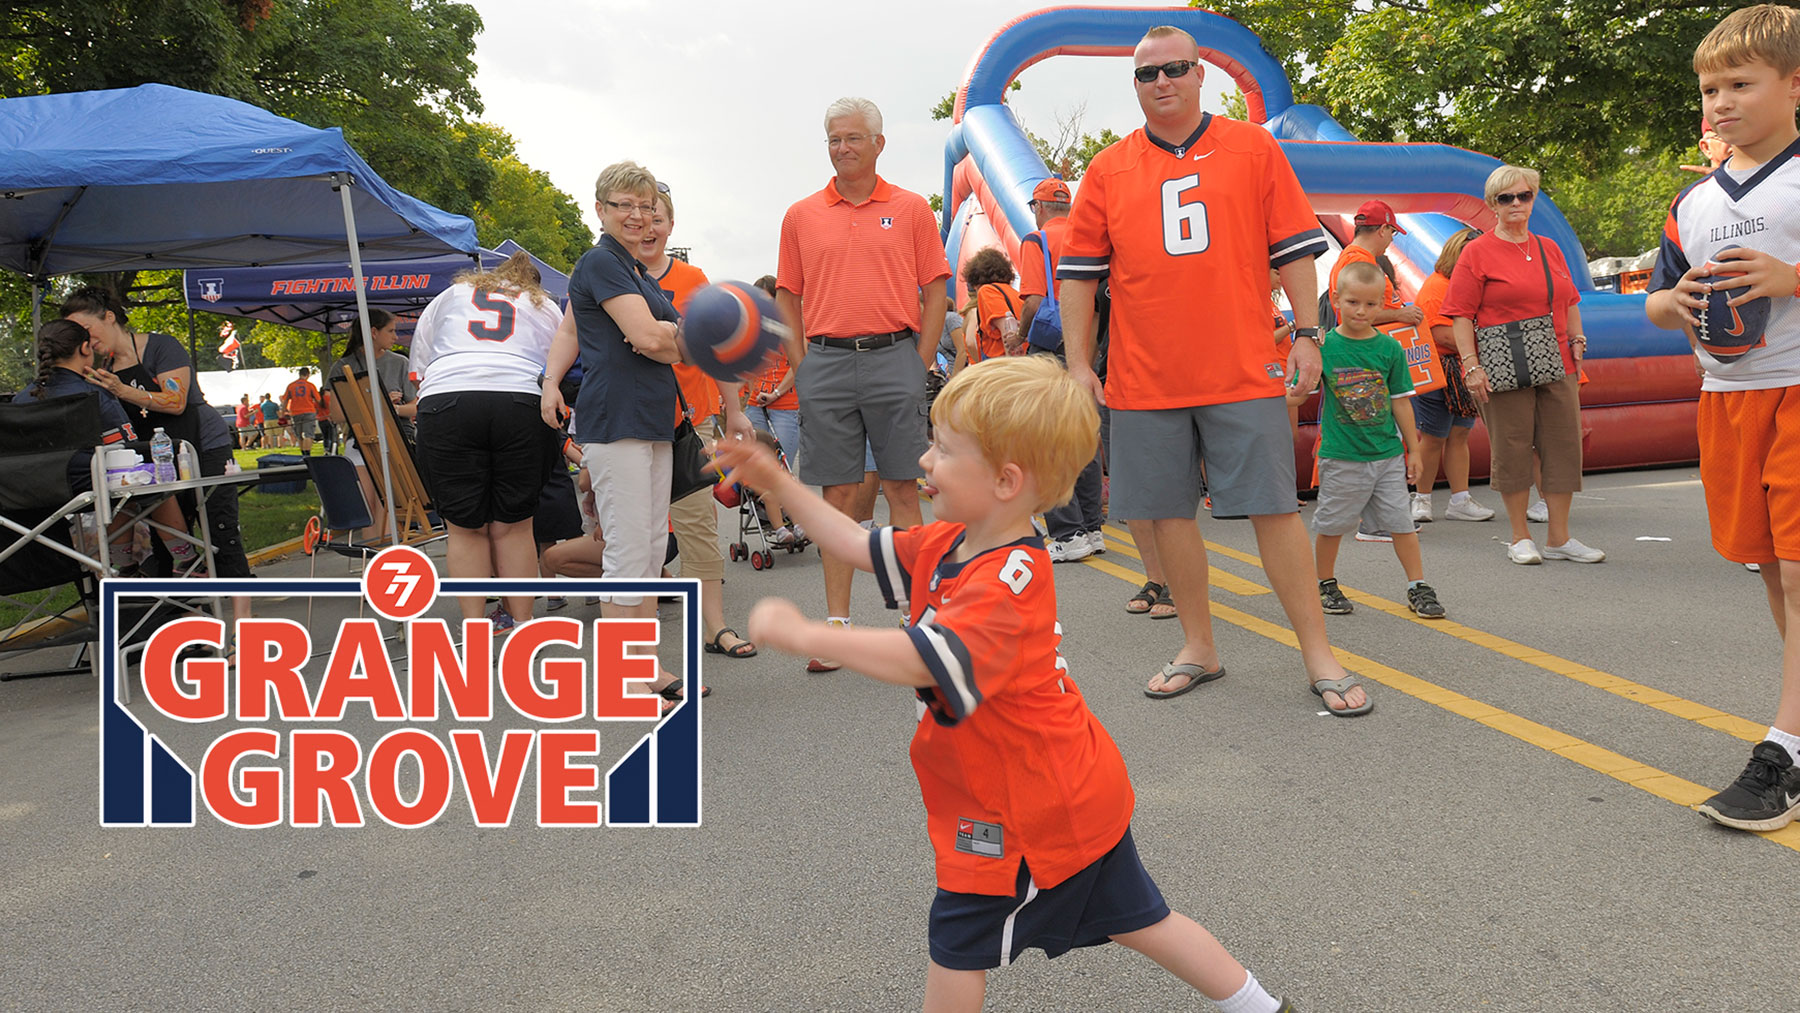 image of illini fans tailgating, with children playing